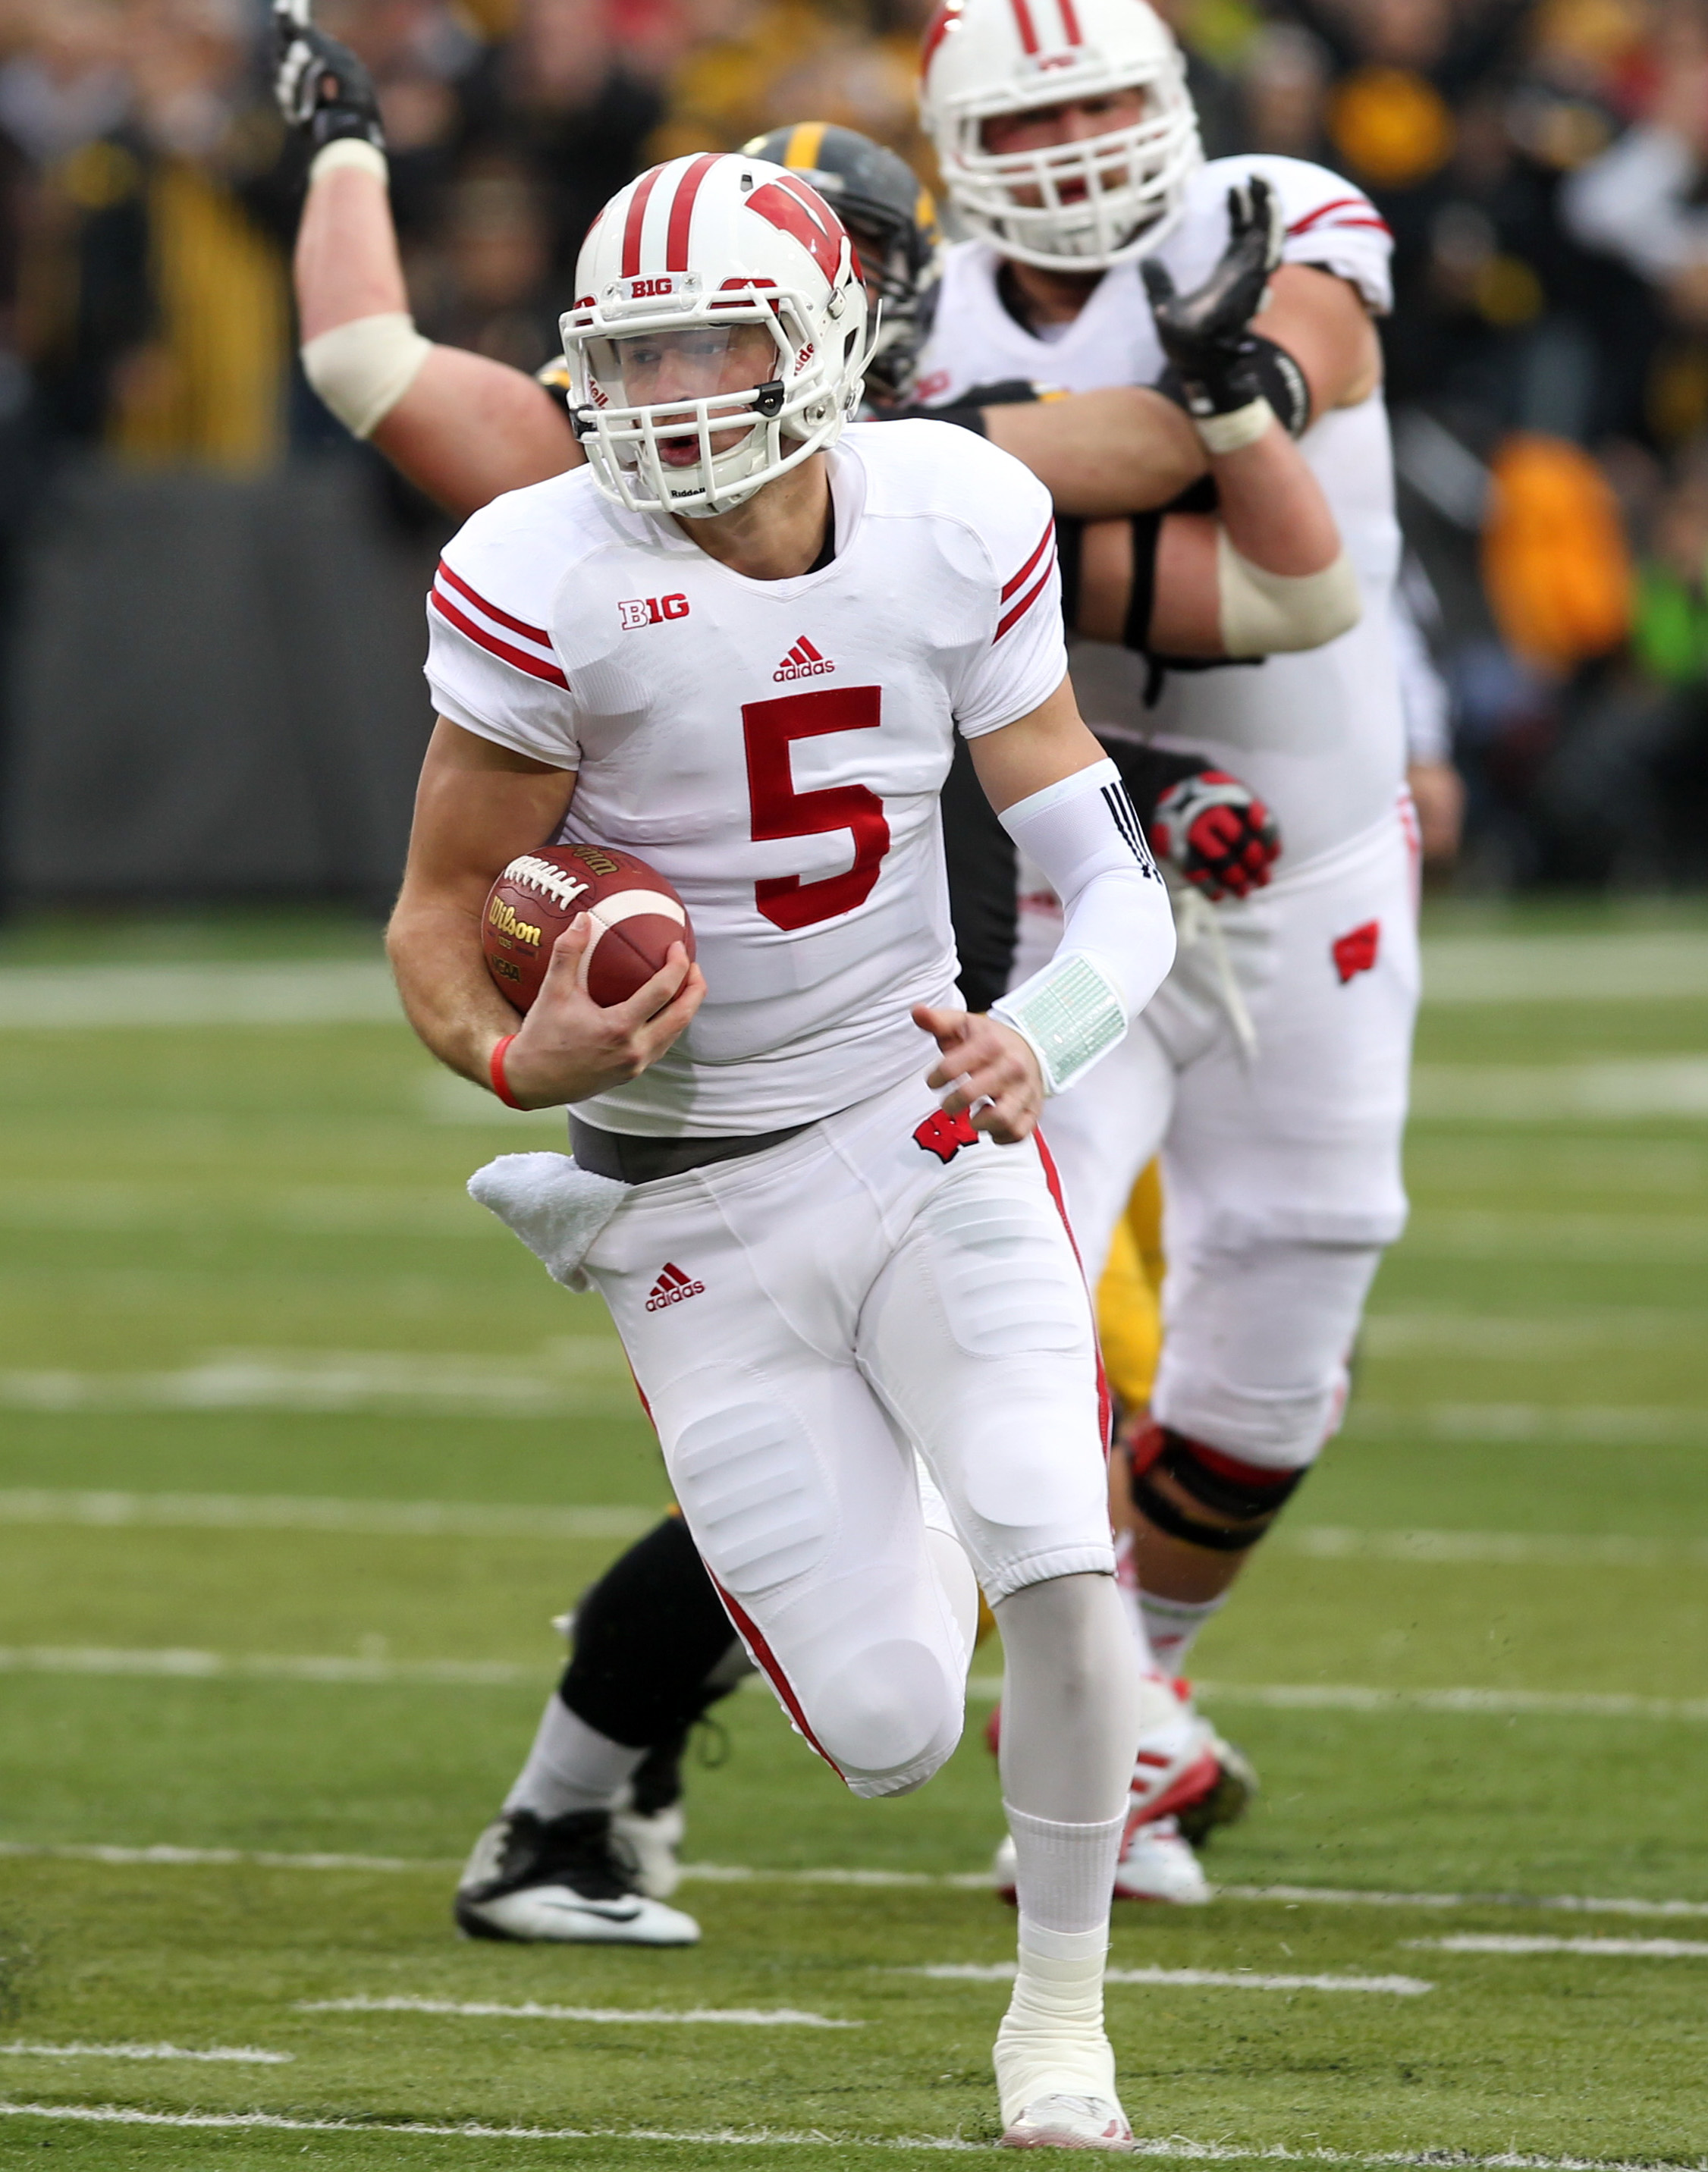 Nov 22, 2014; Iowa City, IA, USA; Wisconsin Badgers quarterback Tanner McEvoy (5) runs for a touchdown against the Iowa Hawkeyes at Kinnick Stadium. (Reese Strickland-USA TODAY Sports)